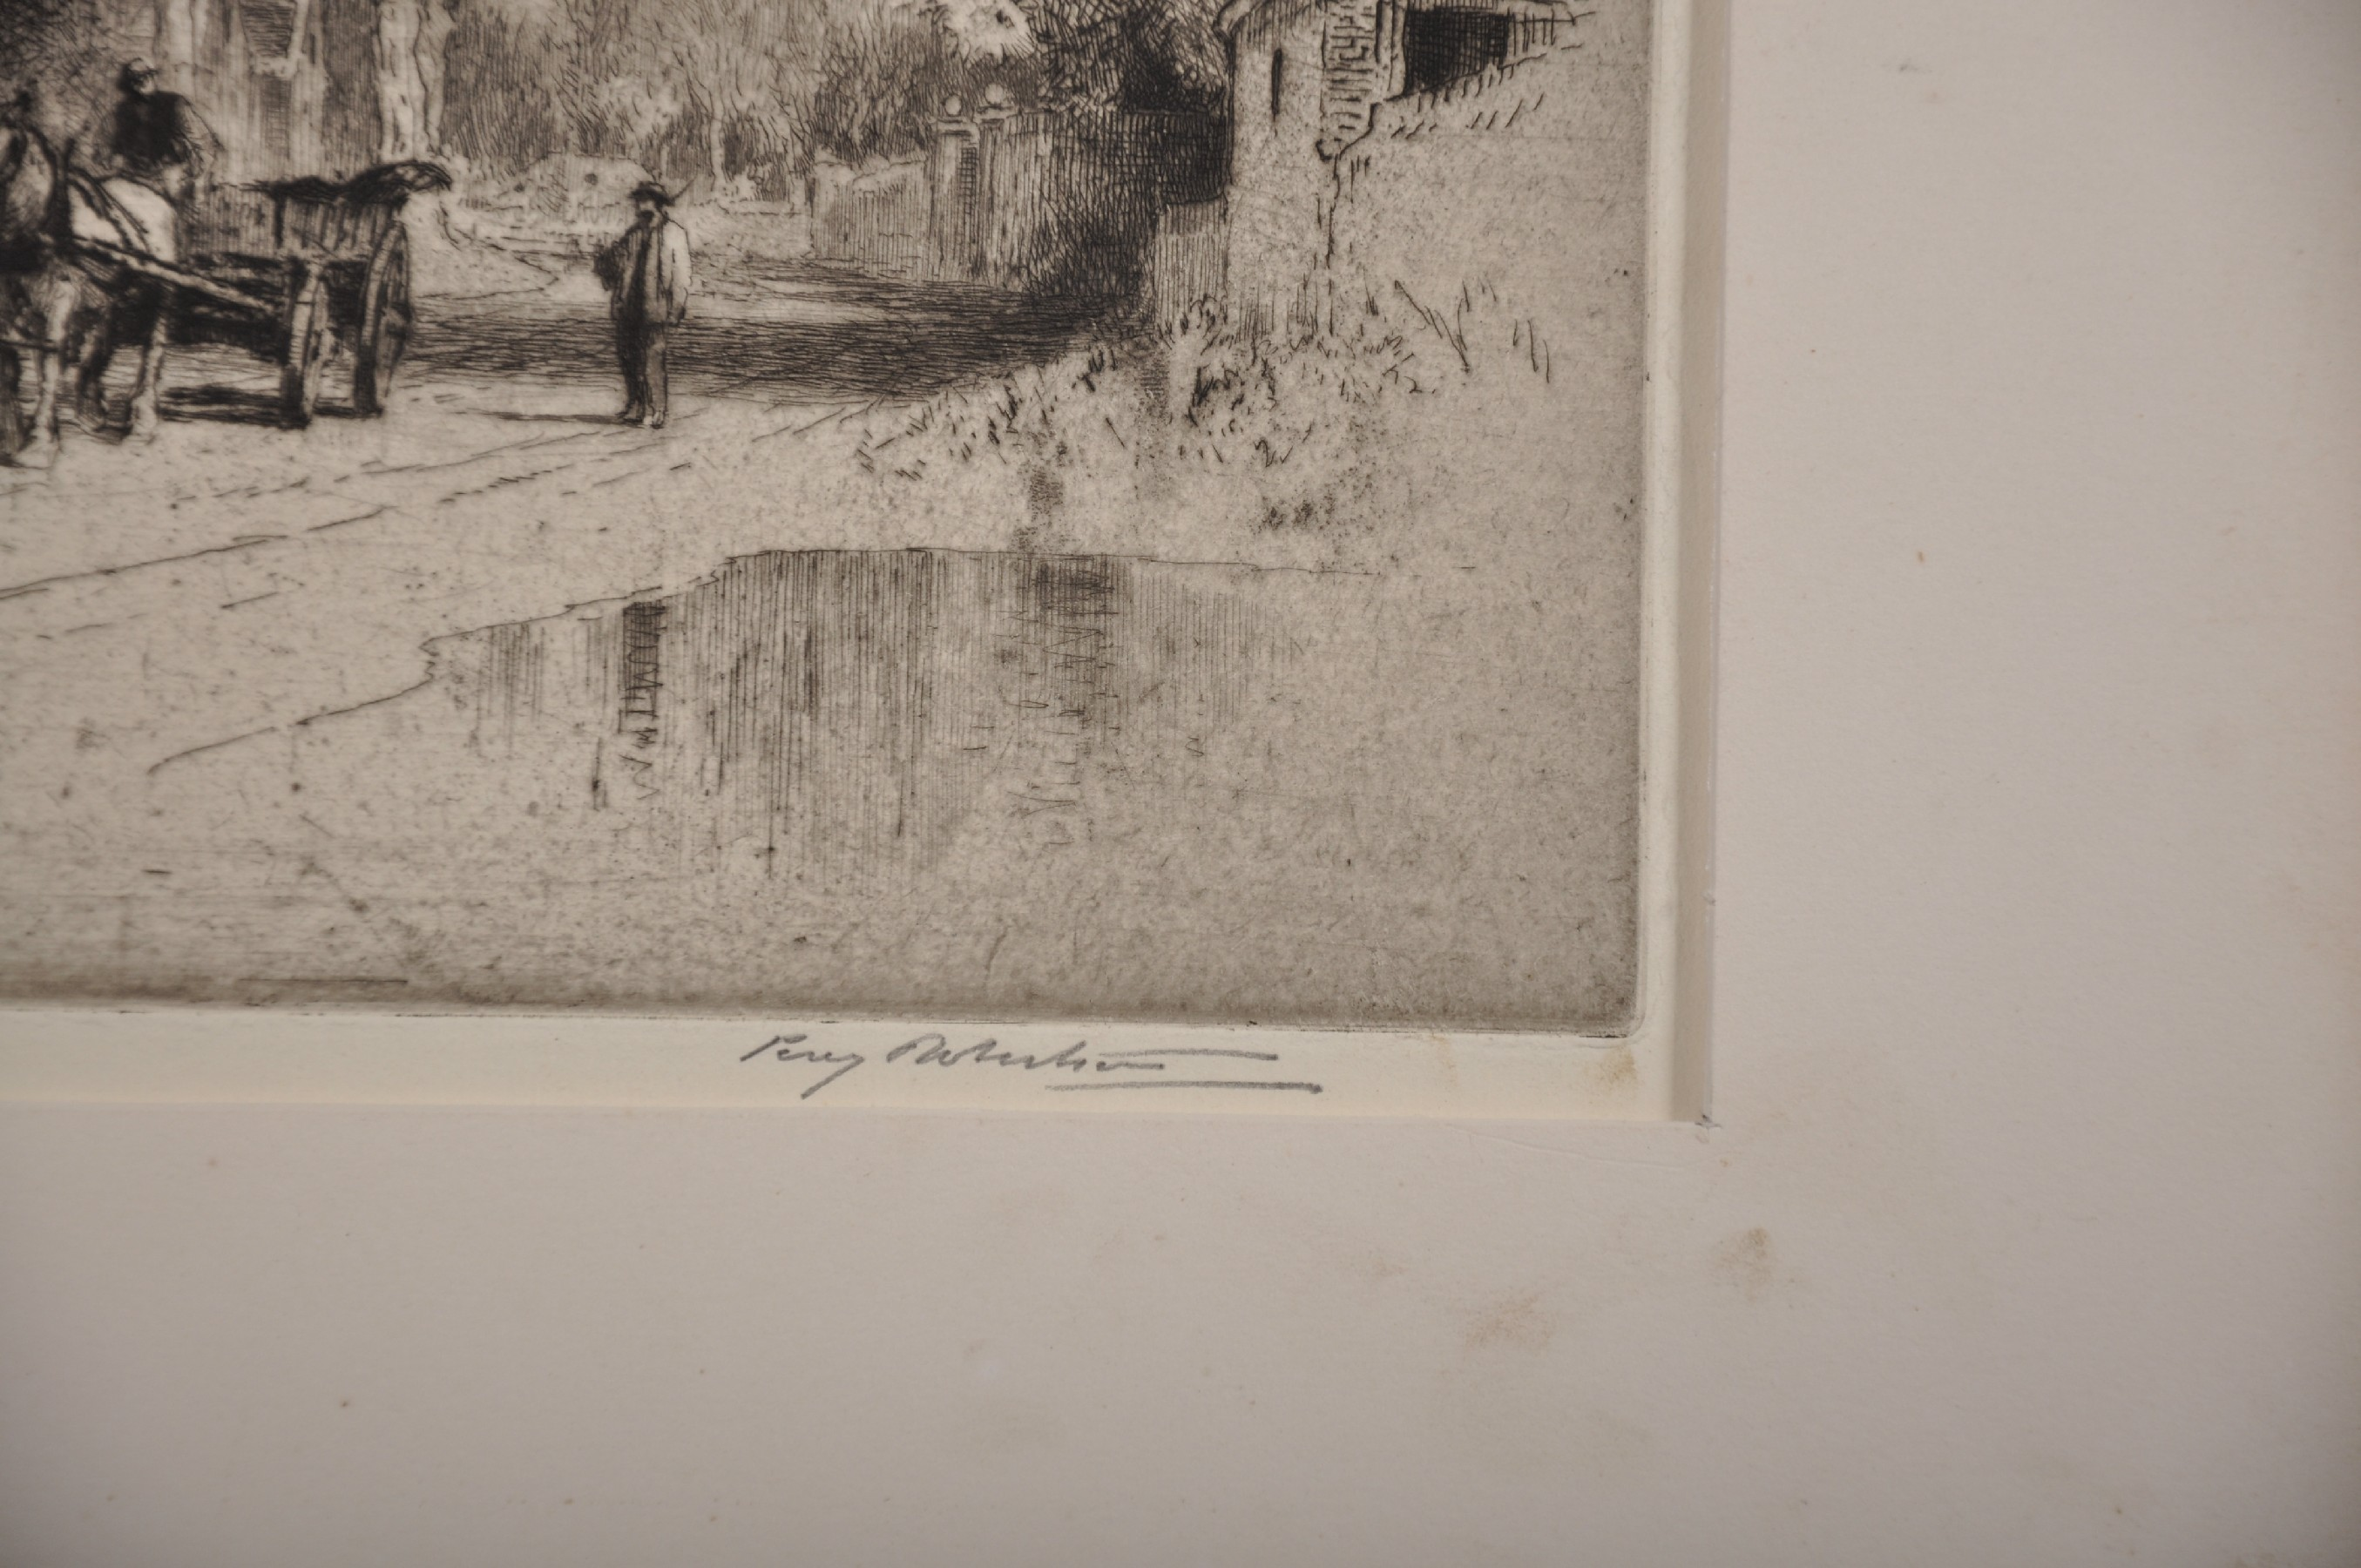 Percy Robinson (20th Century) British. A Village Lane with a Horse and Cart, Etching, Signed in - Image 3 of 4